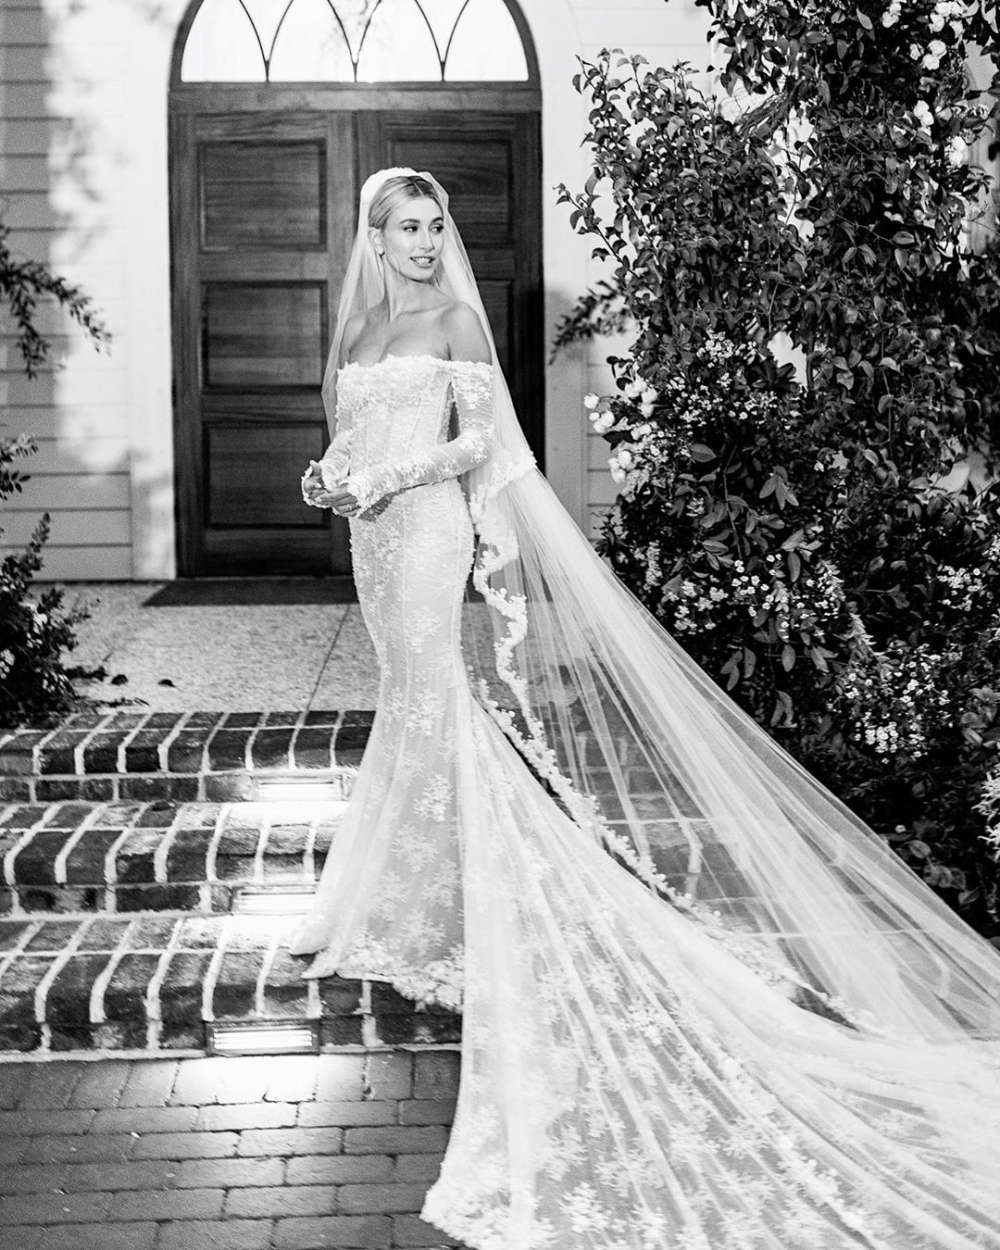 One Week After Getting Married To Justin Bieber Hailey Baldwin